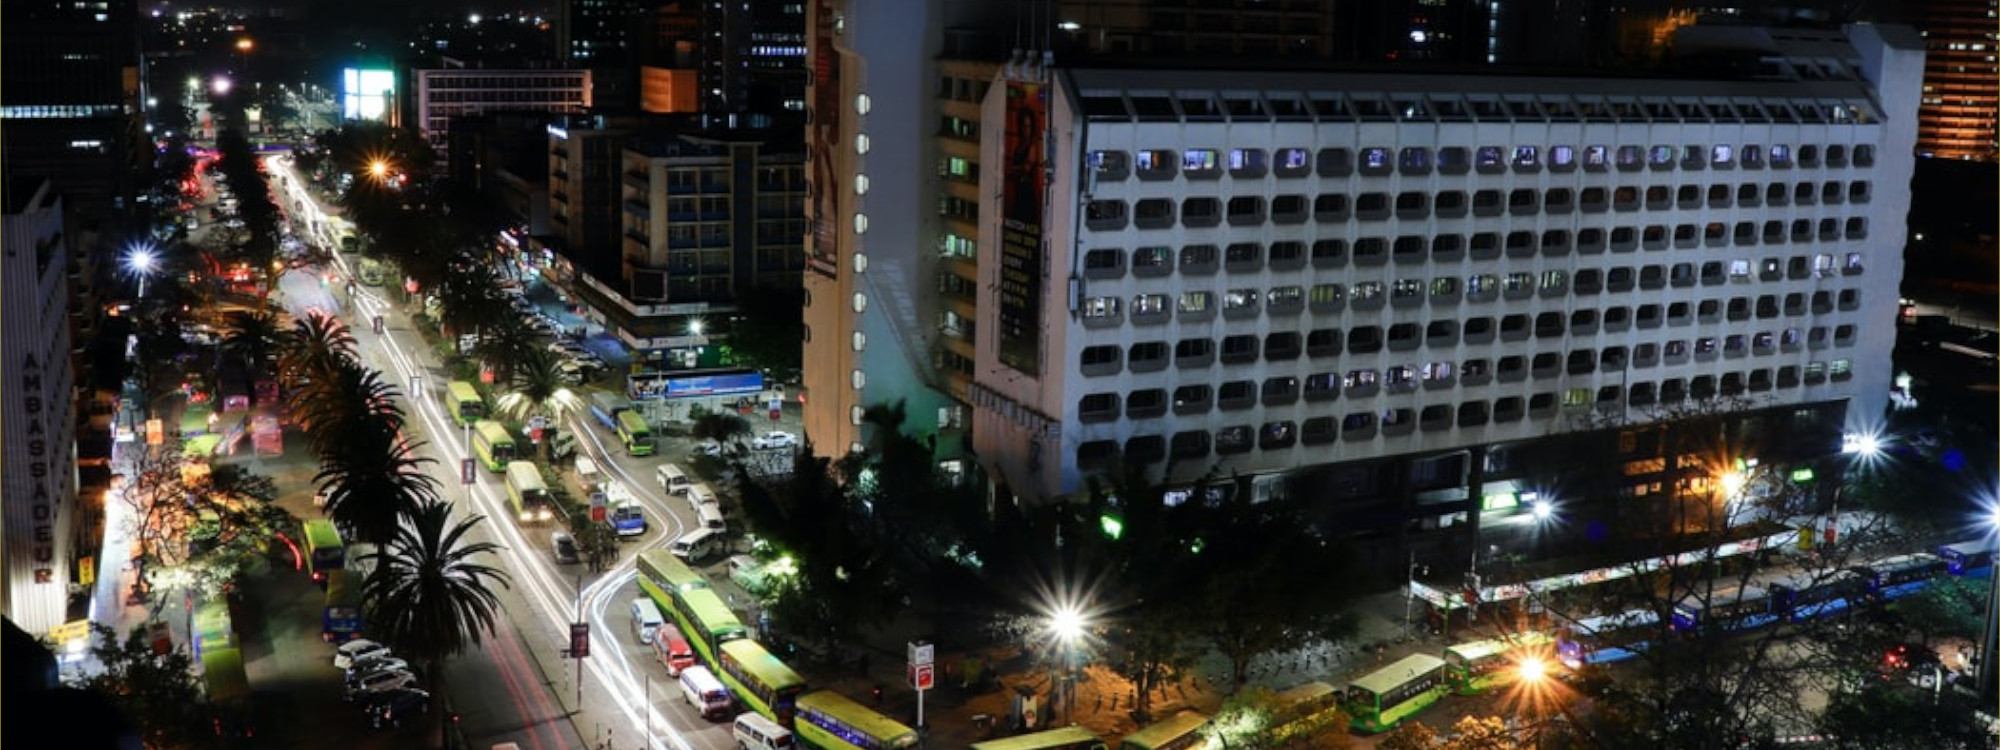 Nairobi at Night